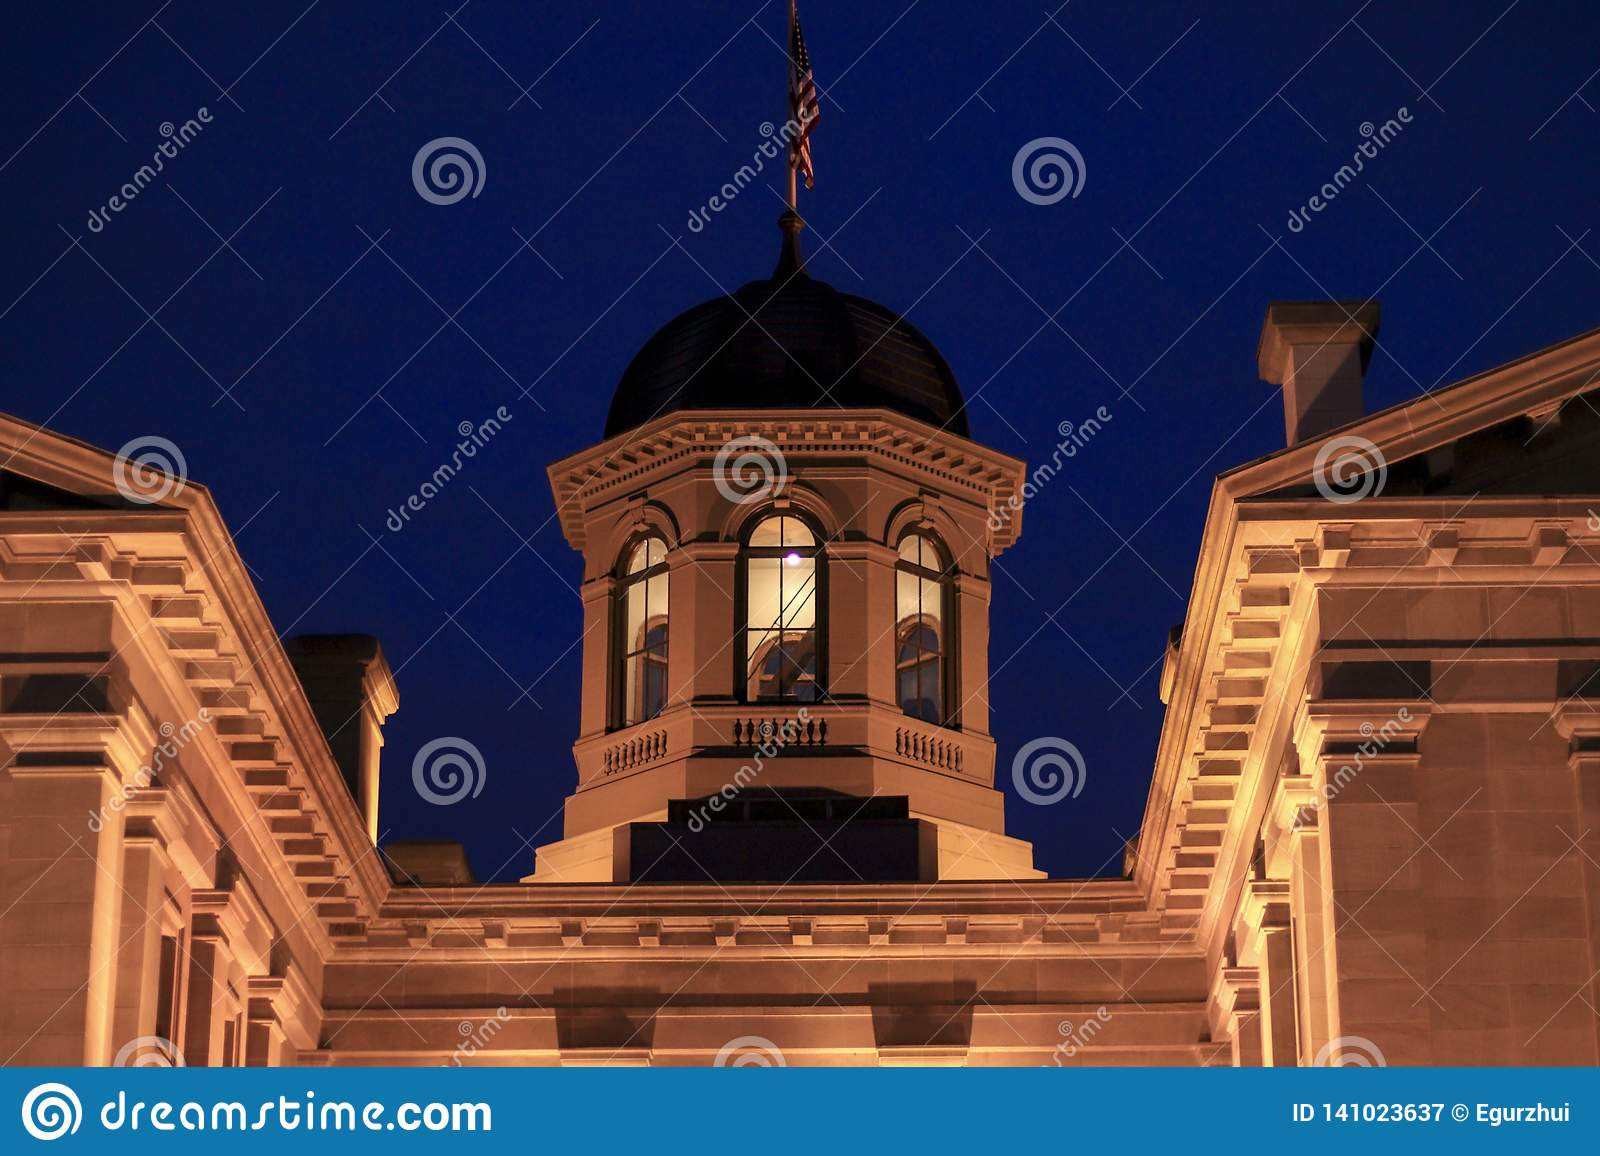 Pioneer courthouse at night